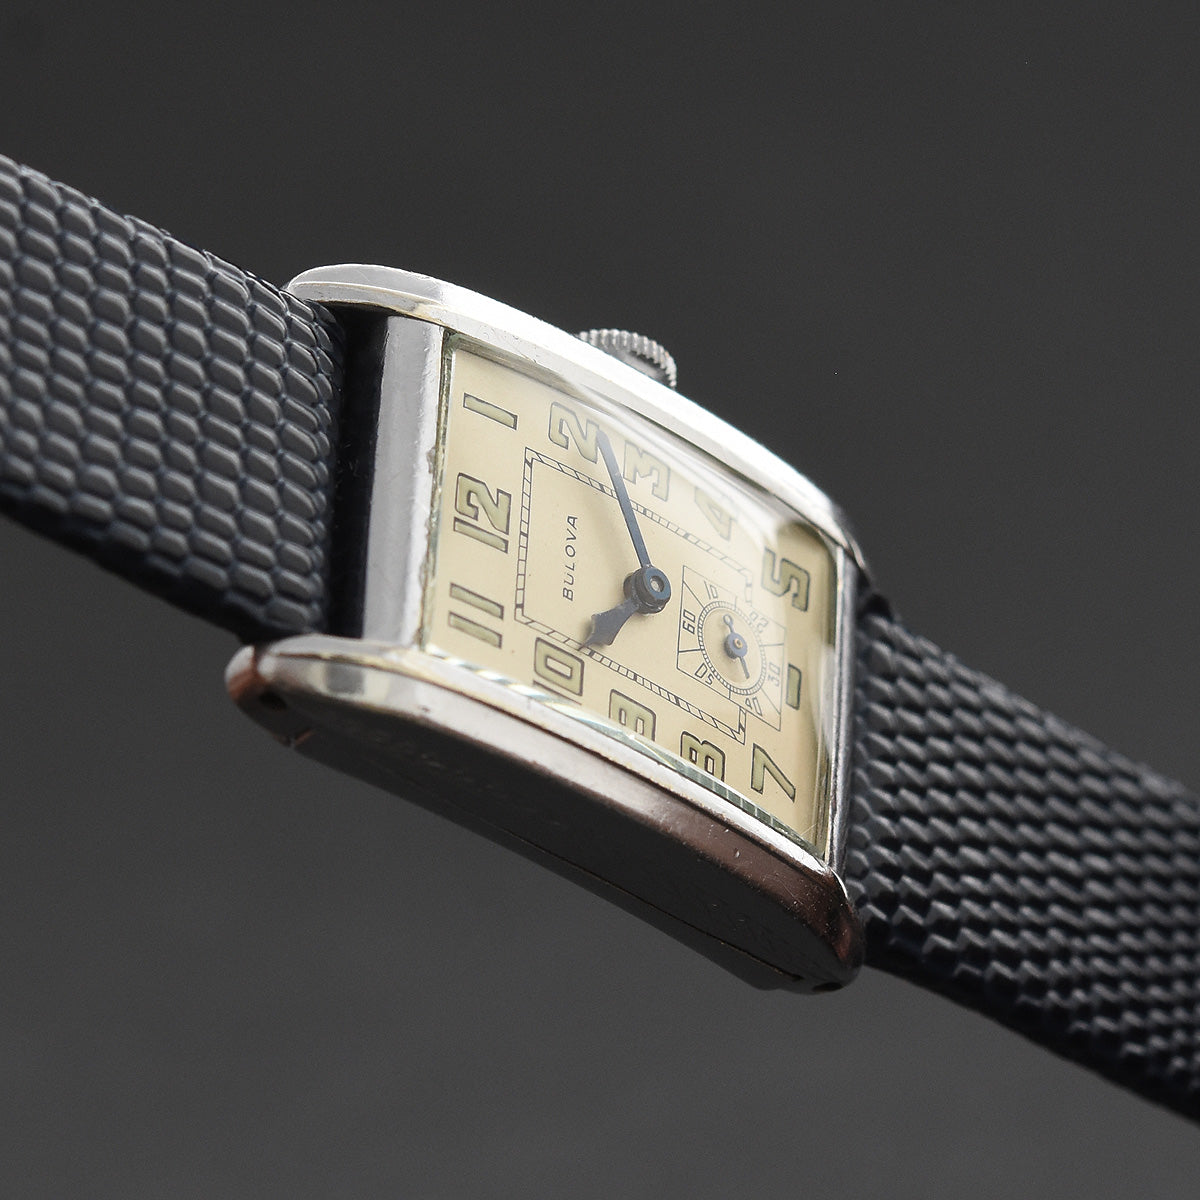 1928 BULOVA 'President' Gents Art Deco Watch